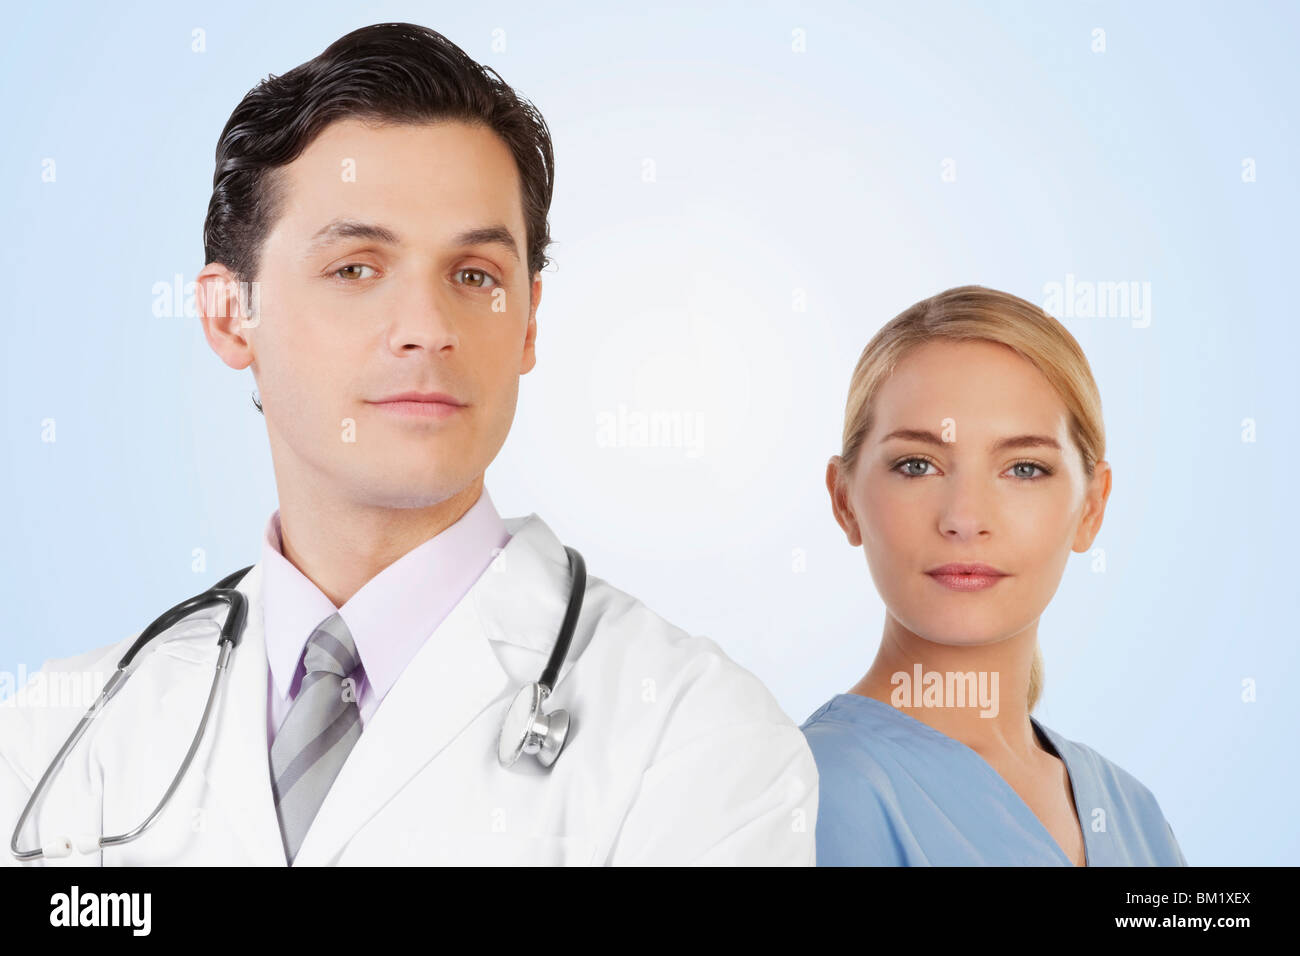 Portrait of a doctor and a nurse - Stock Image